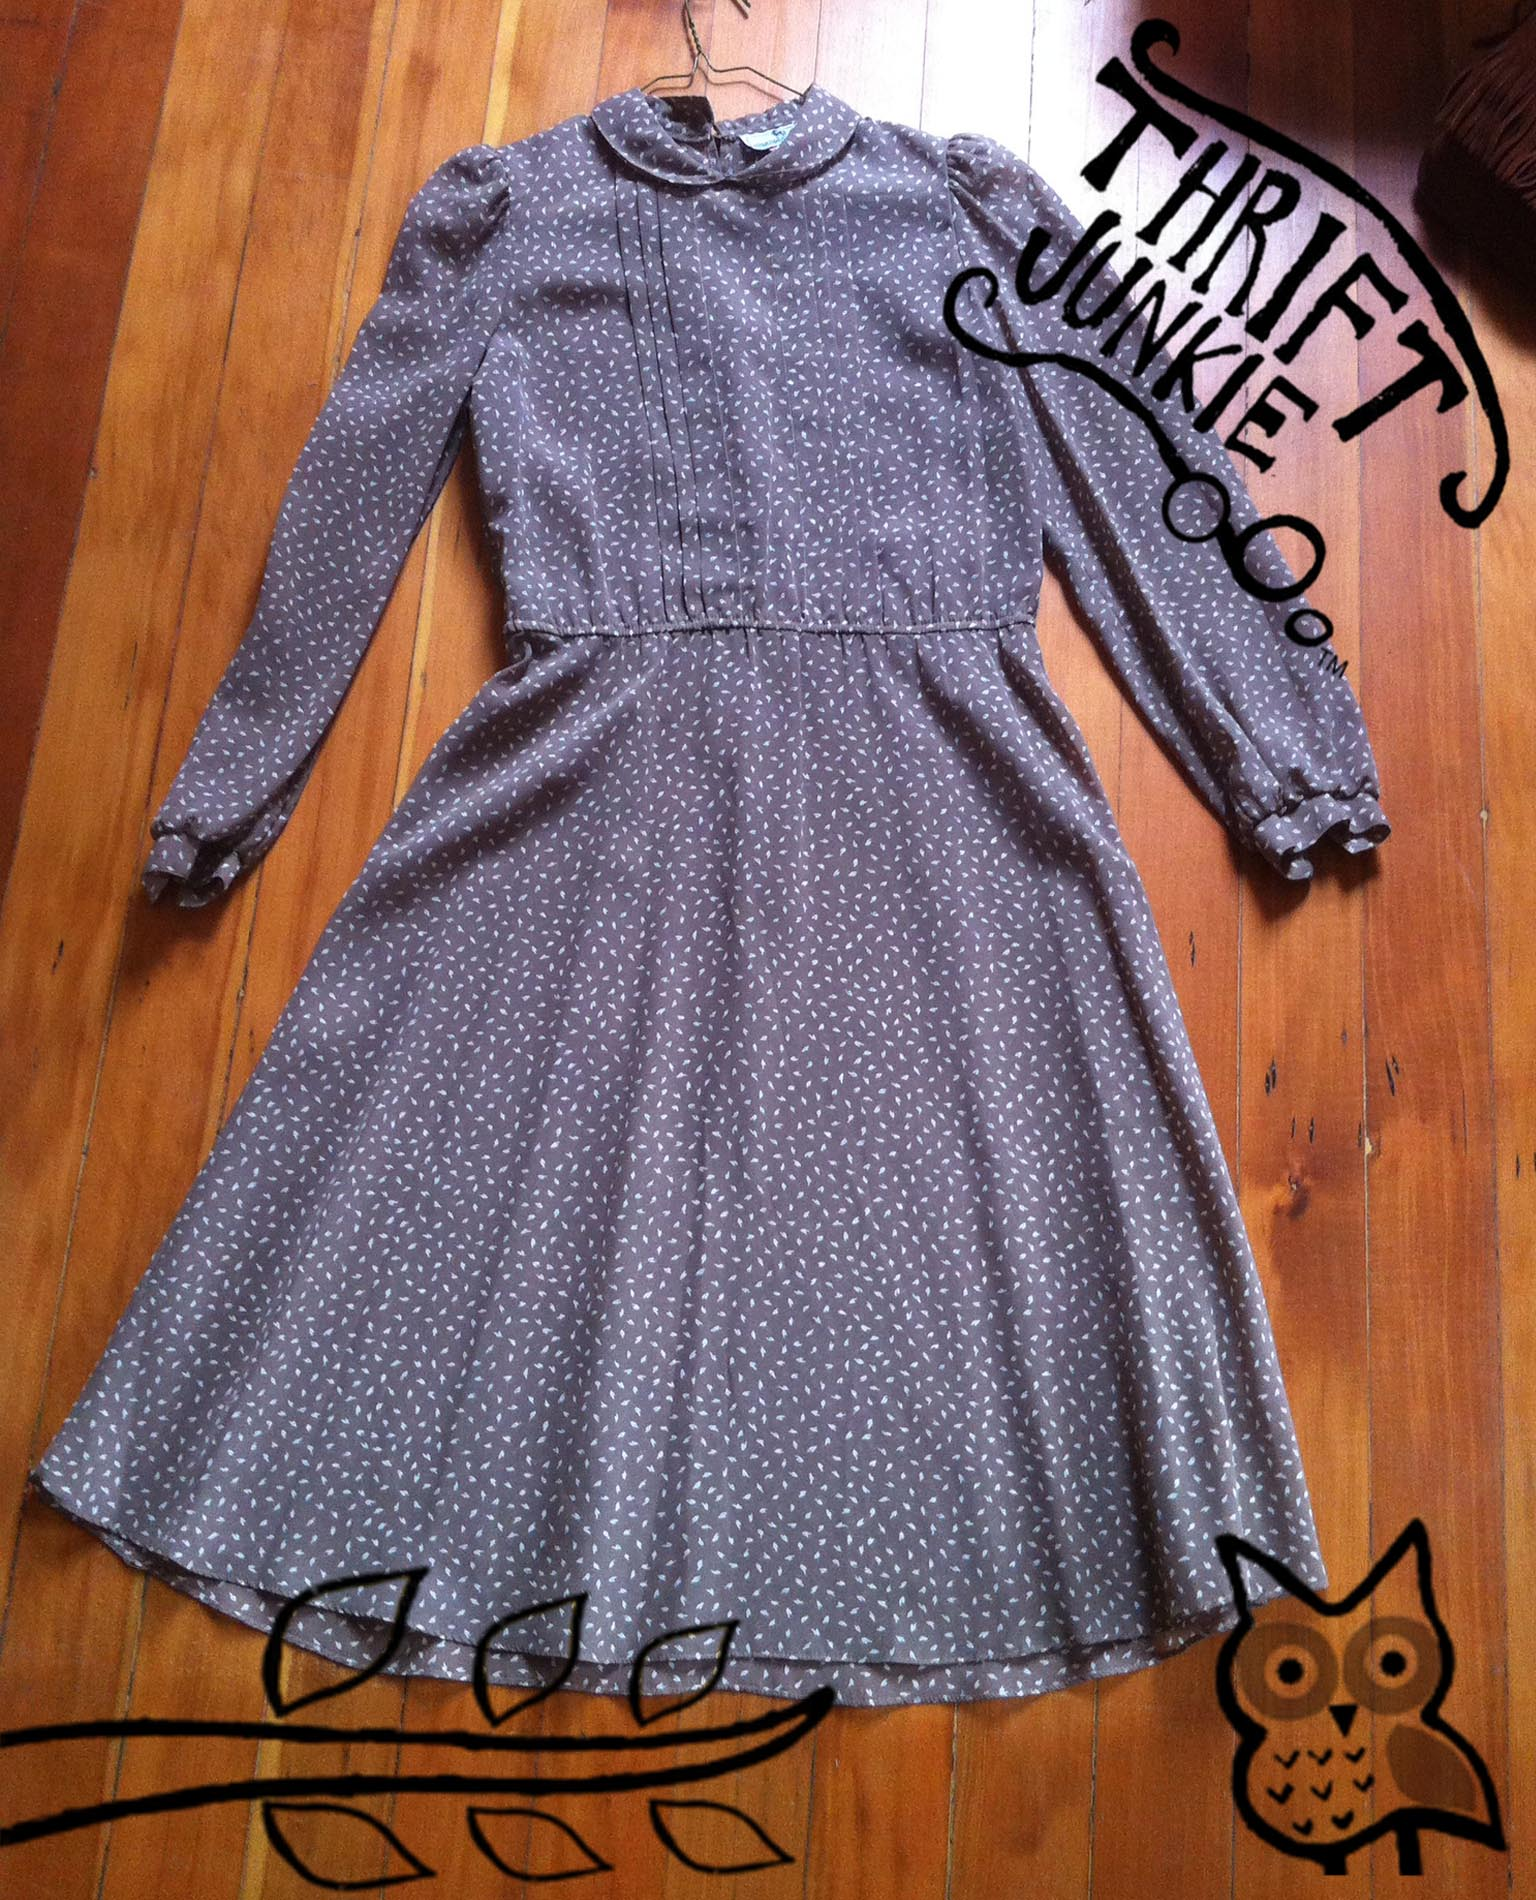 polka dot dress.jpg